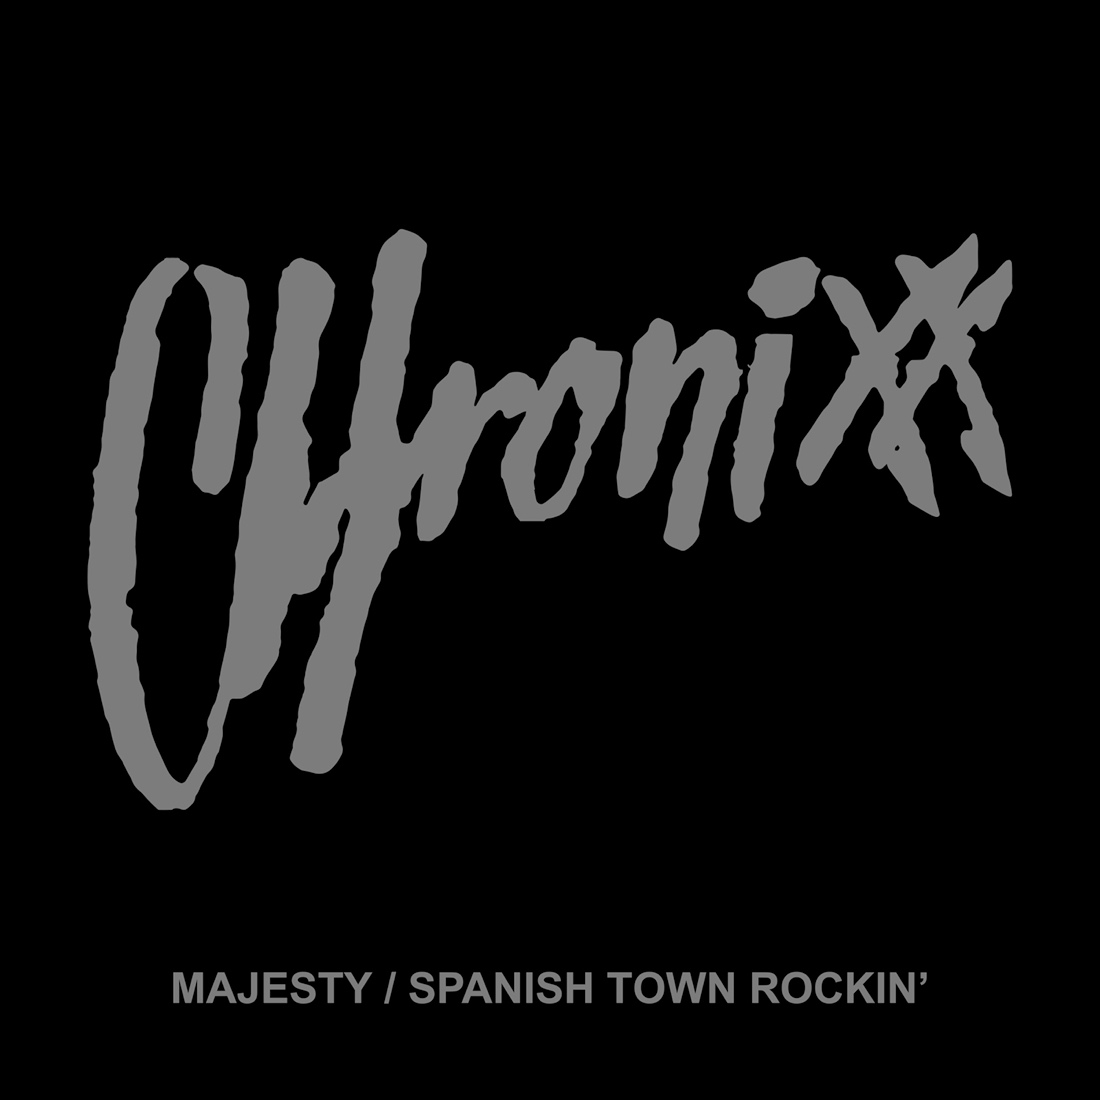 CHRONIXX / MAJESTY / SPANISH TOWN ROCKIN'